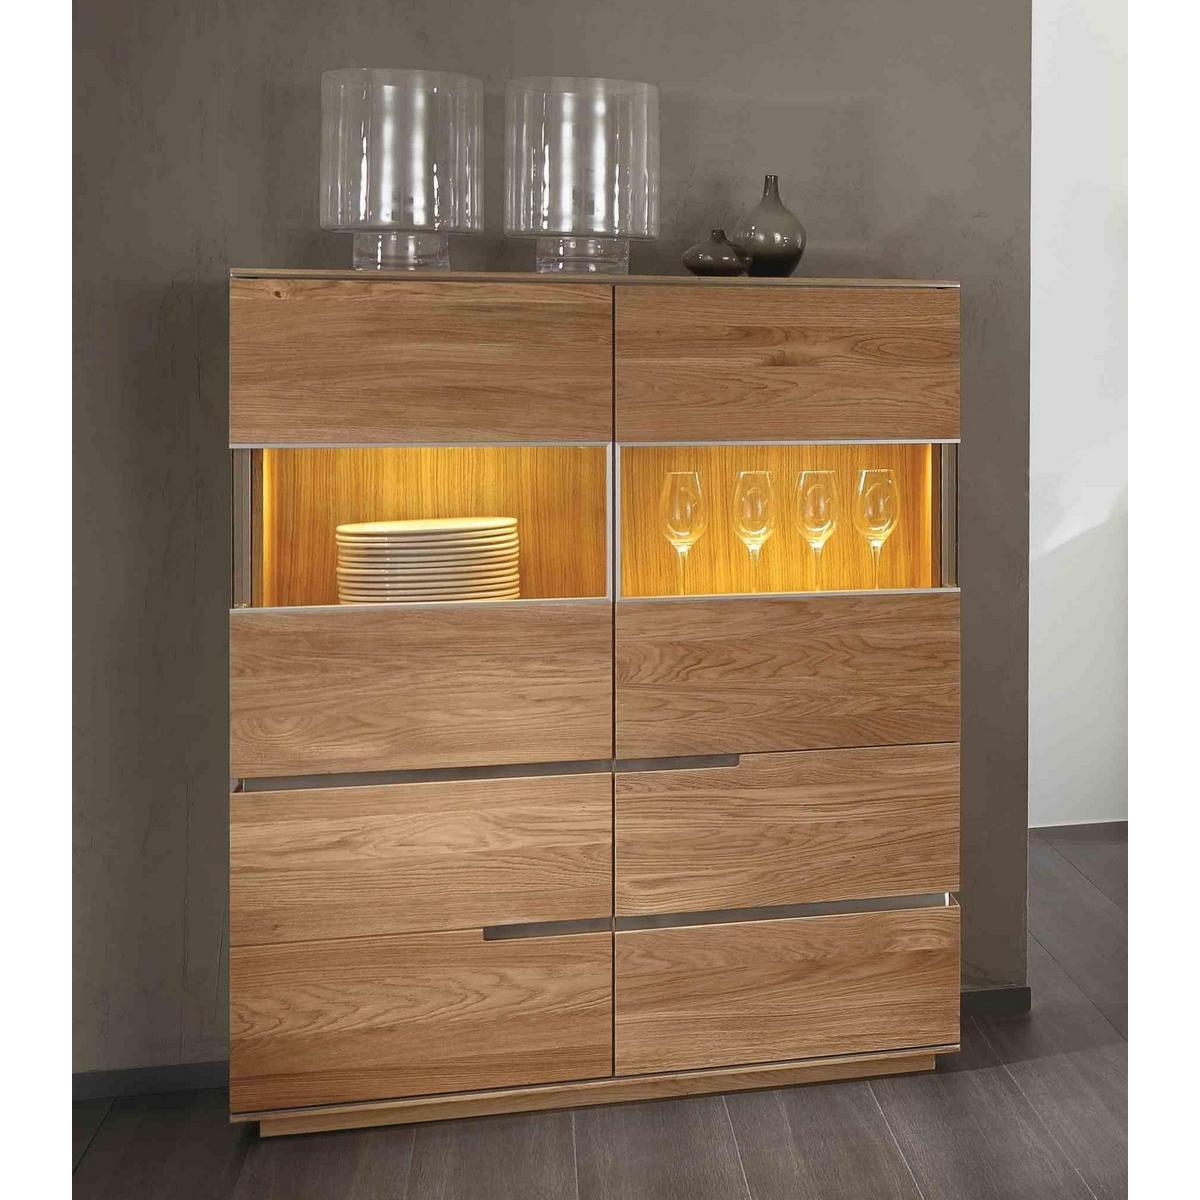 92 wohnzimmerschrank highboard wohnzimmerschrank. Black Bedroom Furniture Sets. Home Design Ideas